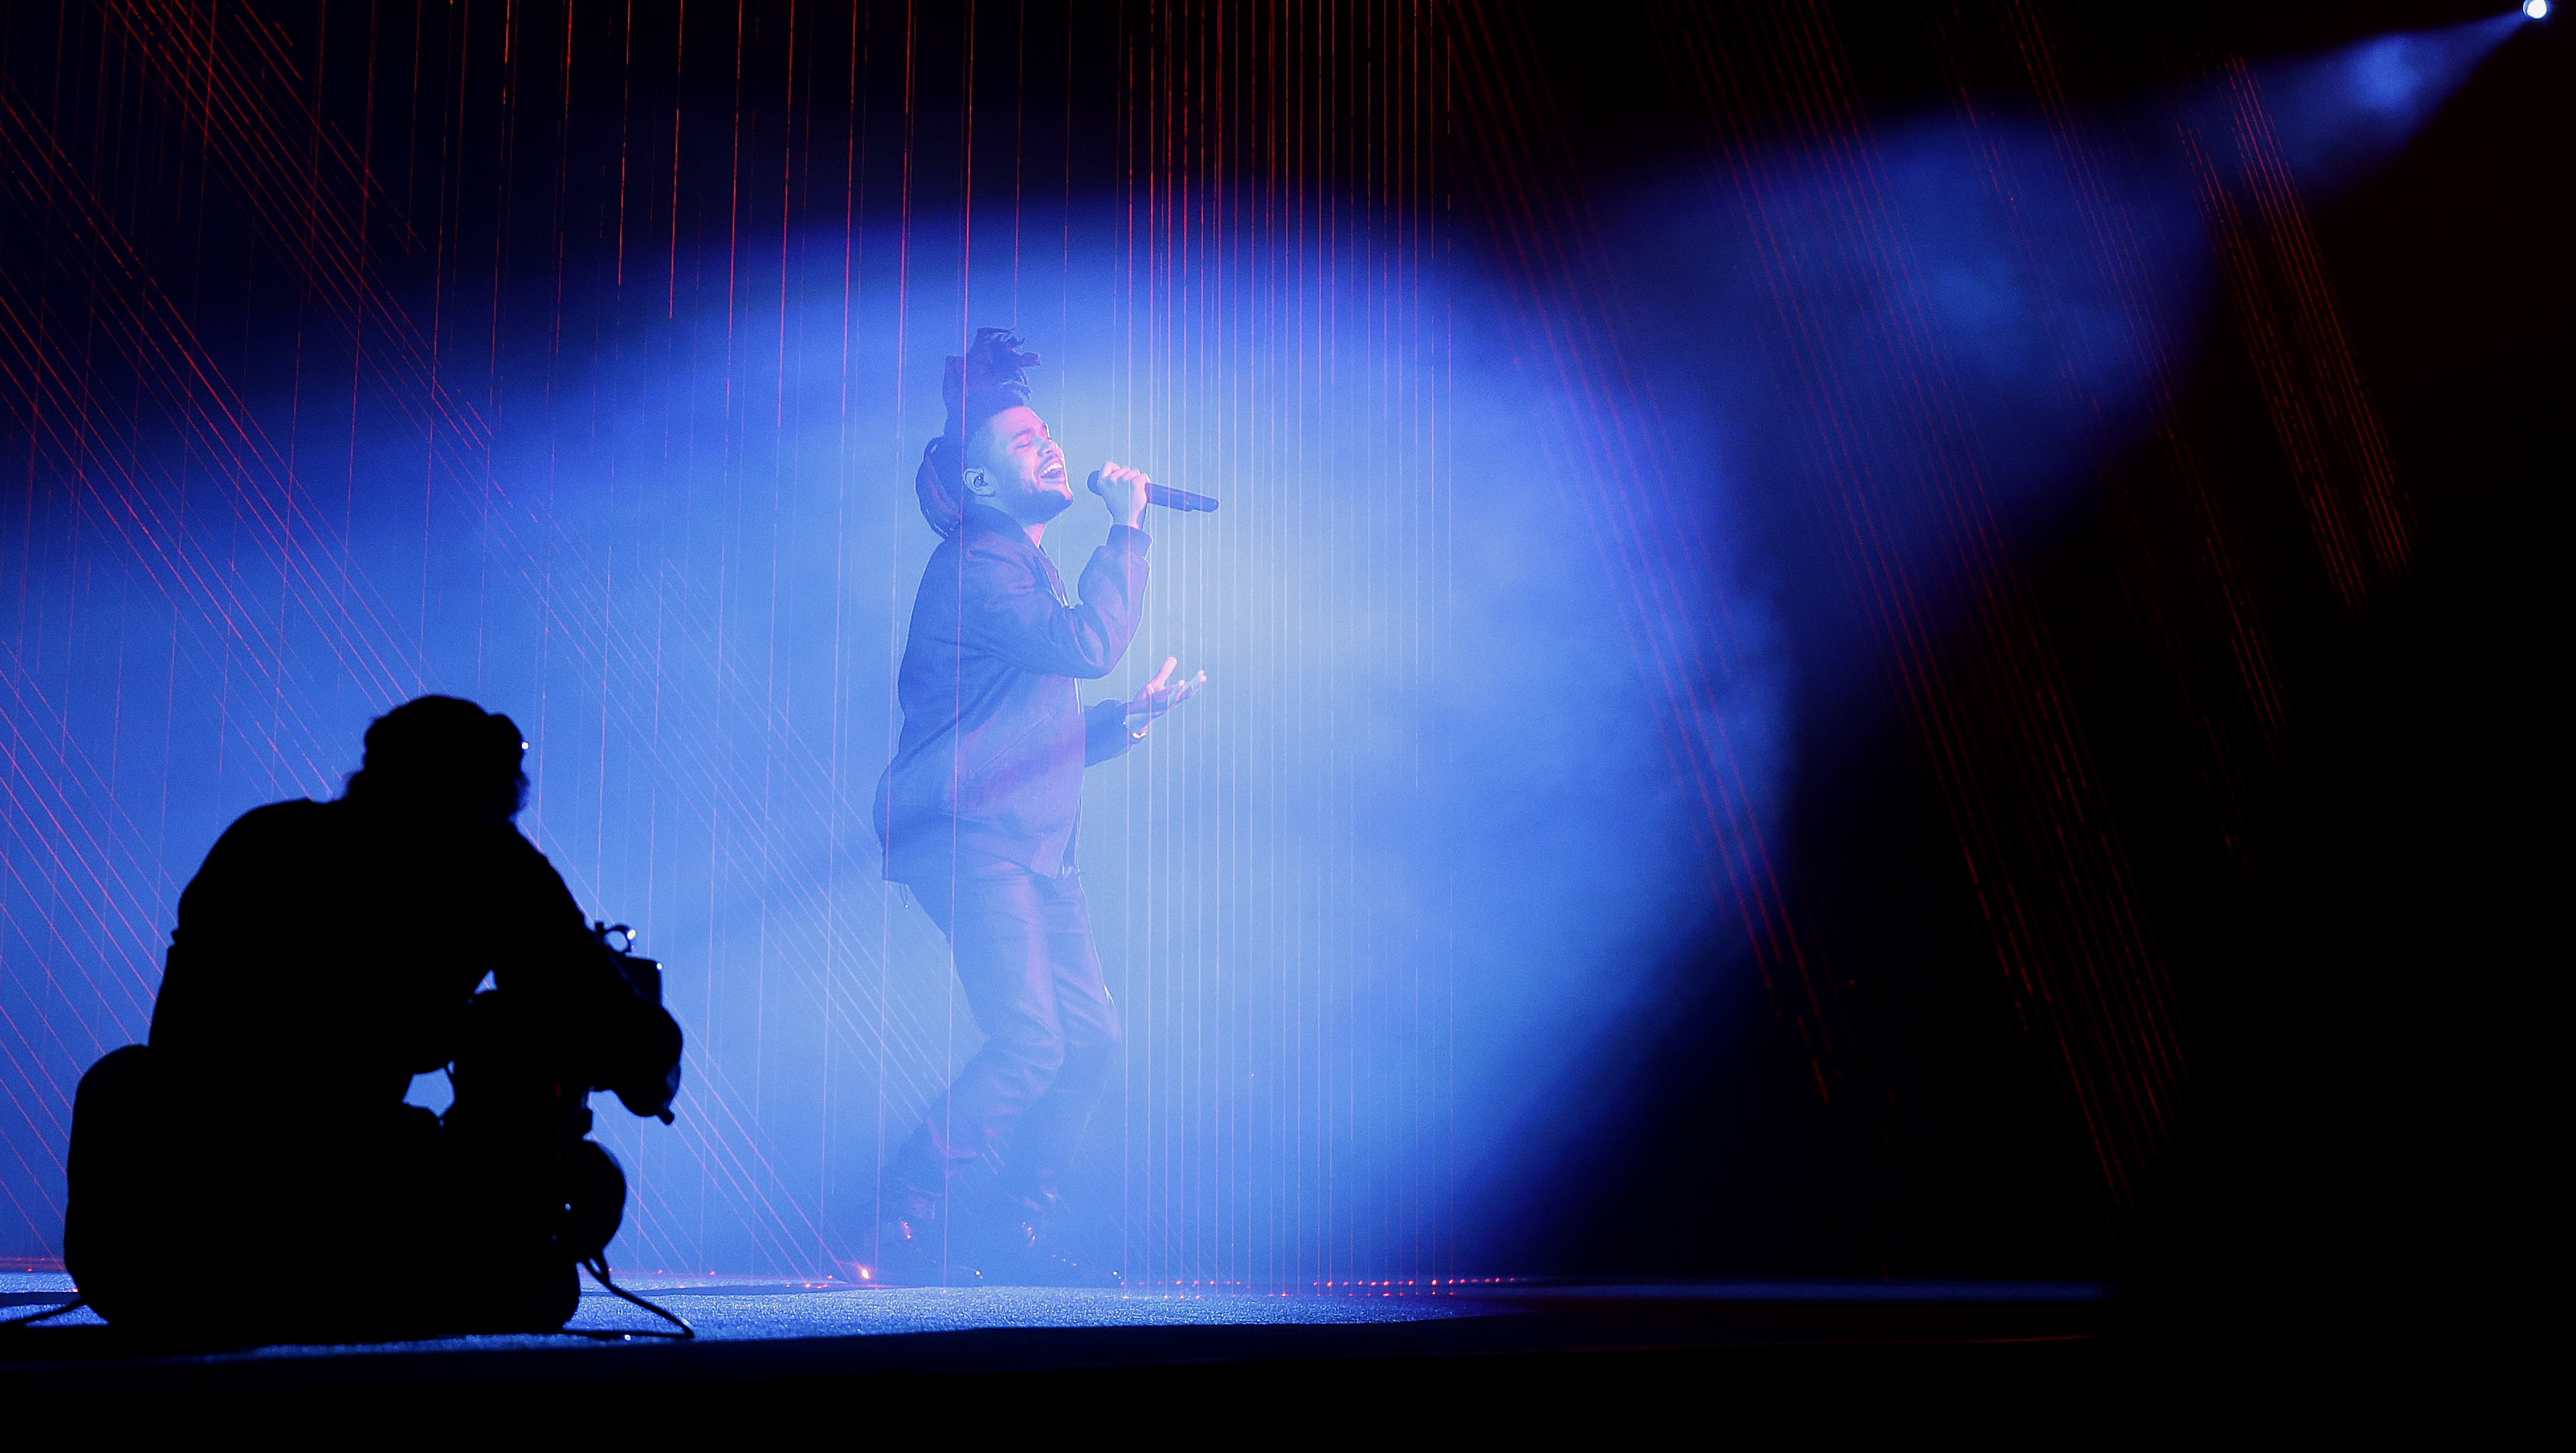 """The Weeknd performs at the Apple Worldwide Developers Conference in San Francisco, Monday, June 8, 2015. The maker of iPods and iPhones announced Apple Music, an app that combines a 24-hour, seven-day live radio station called """"Beats 1"""" with an on-demand music streaming service."""